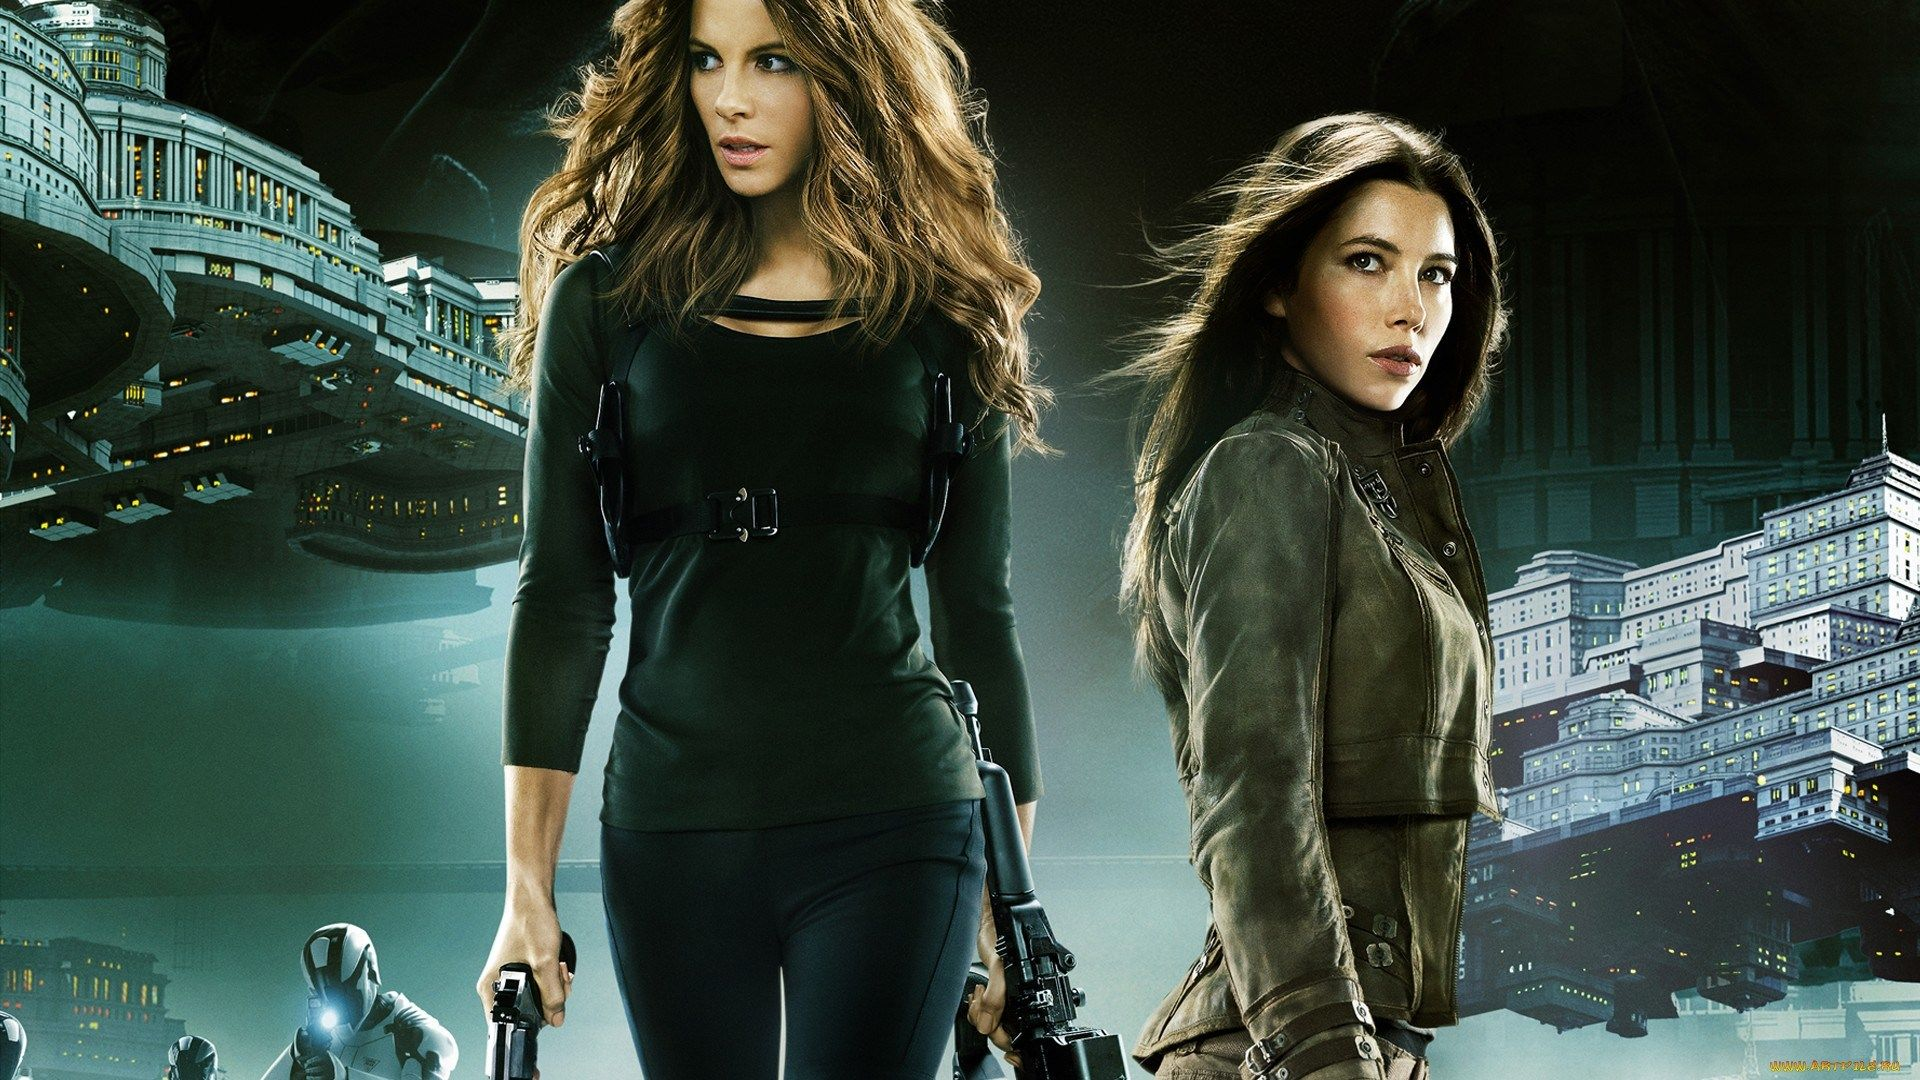 Free Wallpaper And Screensavers For Total Recall 2012 Total